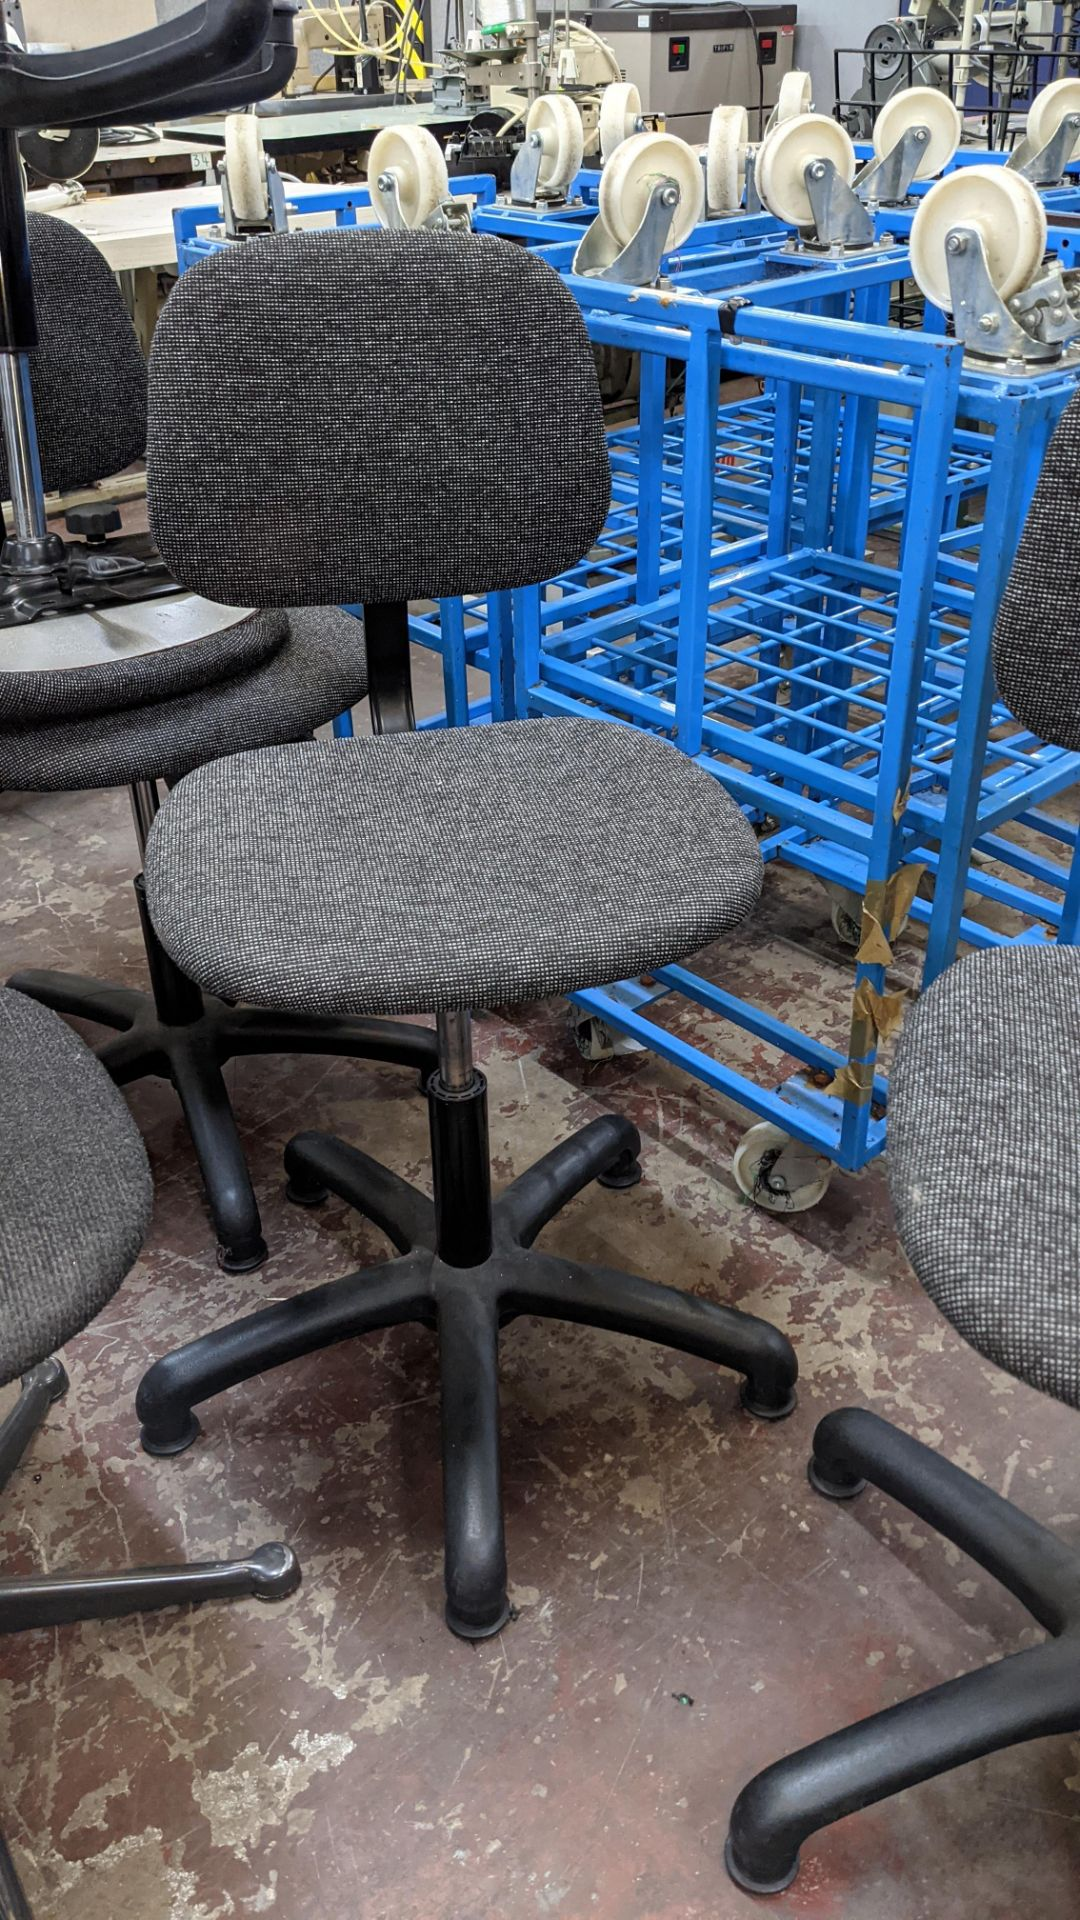 4 off matching machinists chairs - Image 5 of 7